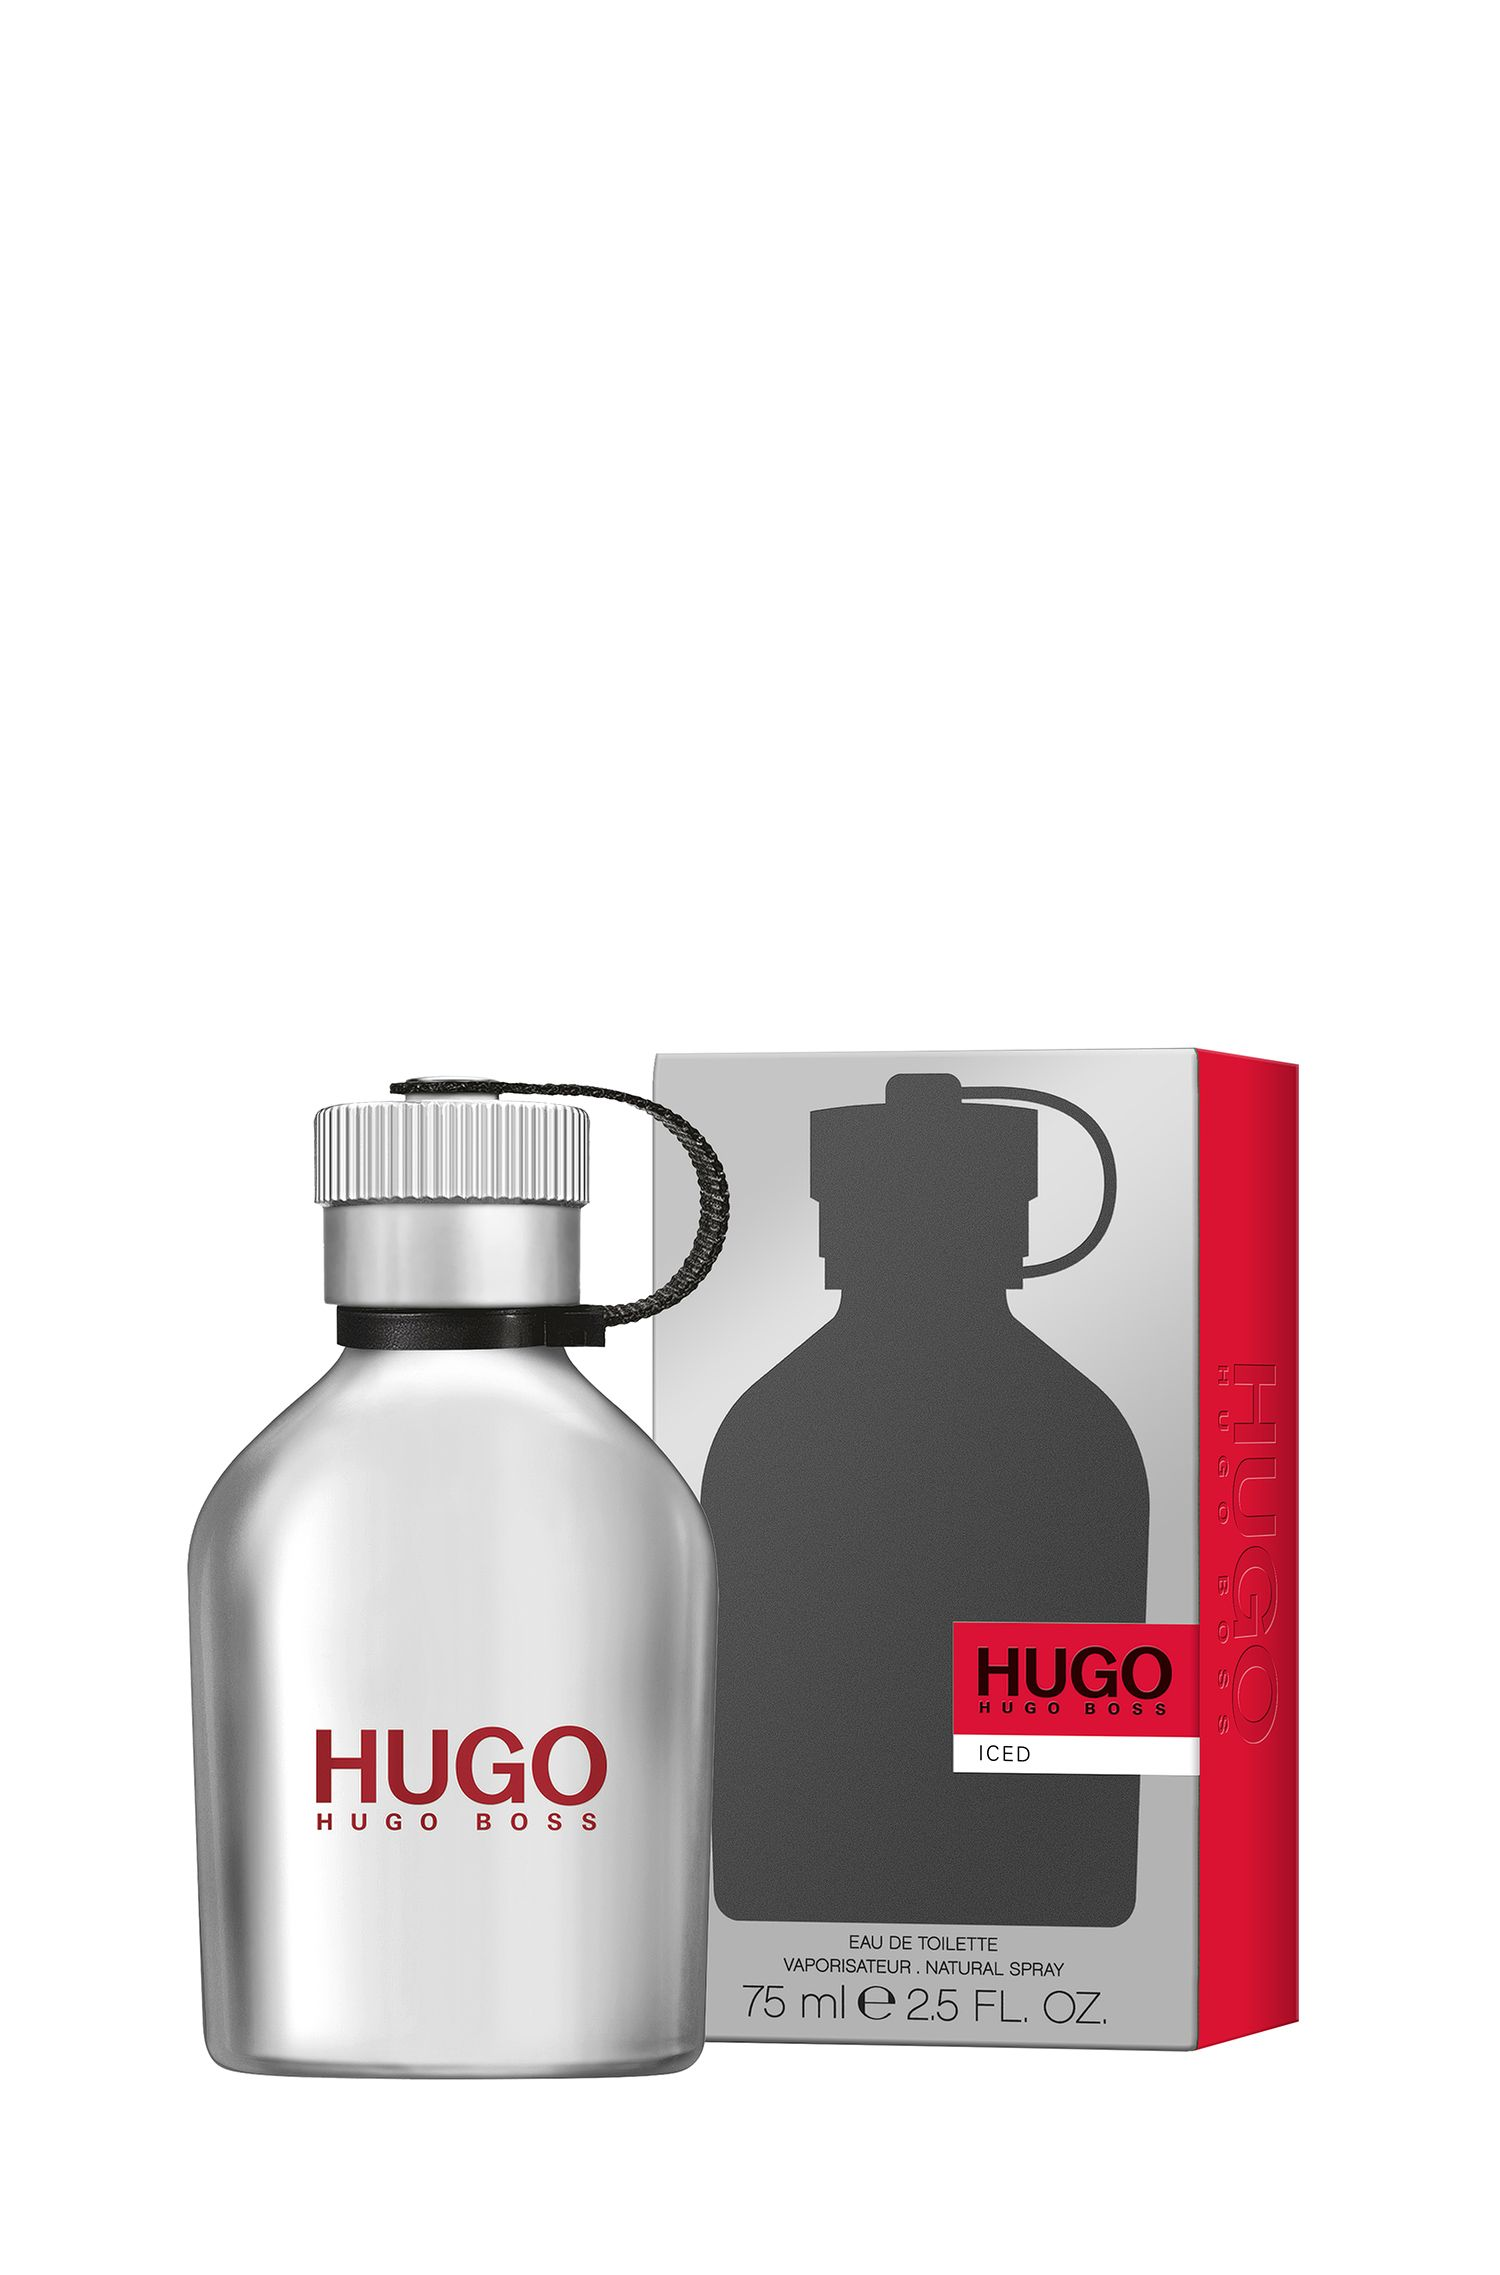 Eau de Toilette 'HUGO Iced' 75 ml